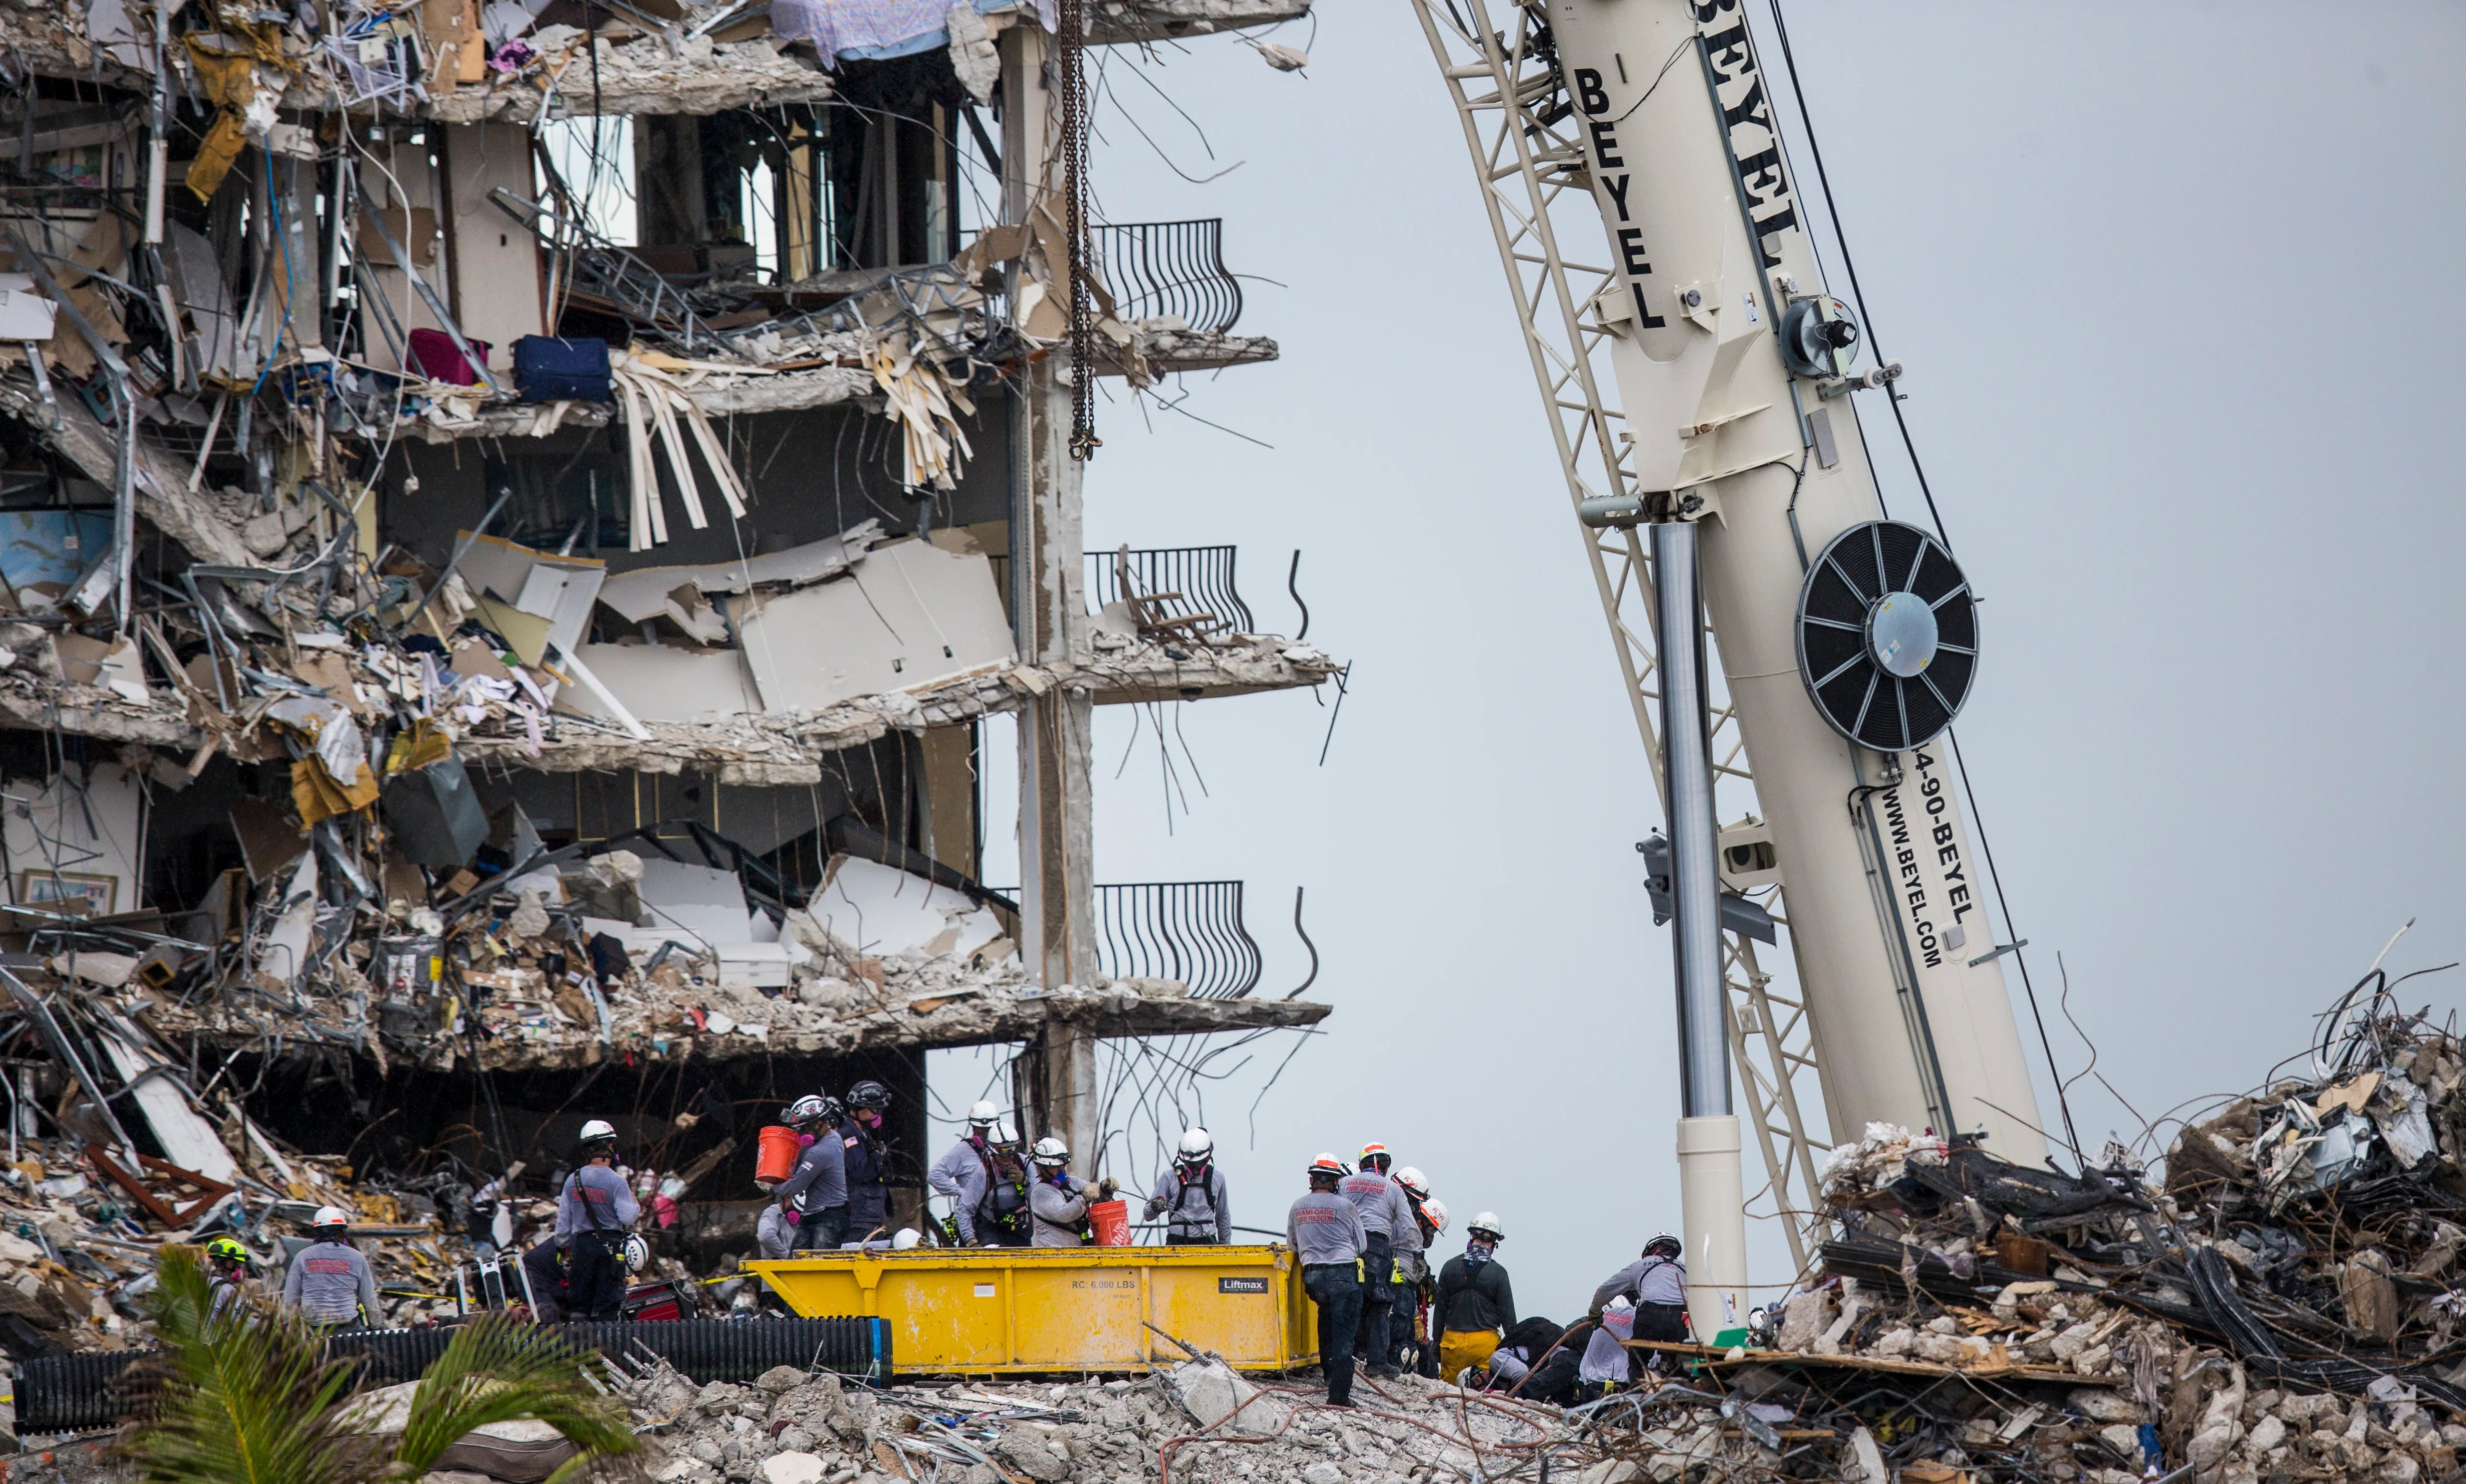 Rescuers continue to search through the rubble  of the Champlain Towers south condo collapse in Surfside, Fla. on Tuesday, June 29, 2021.